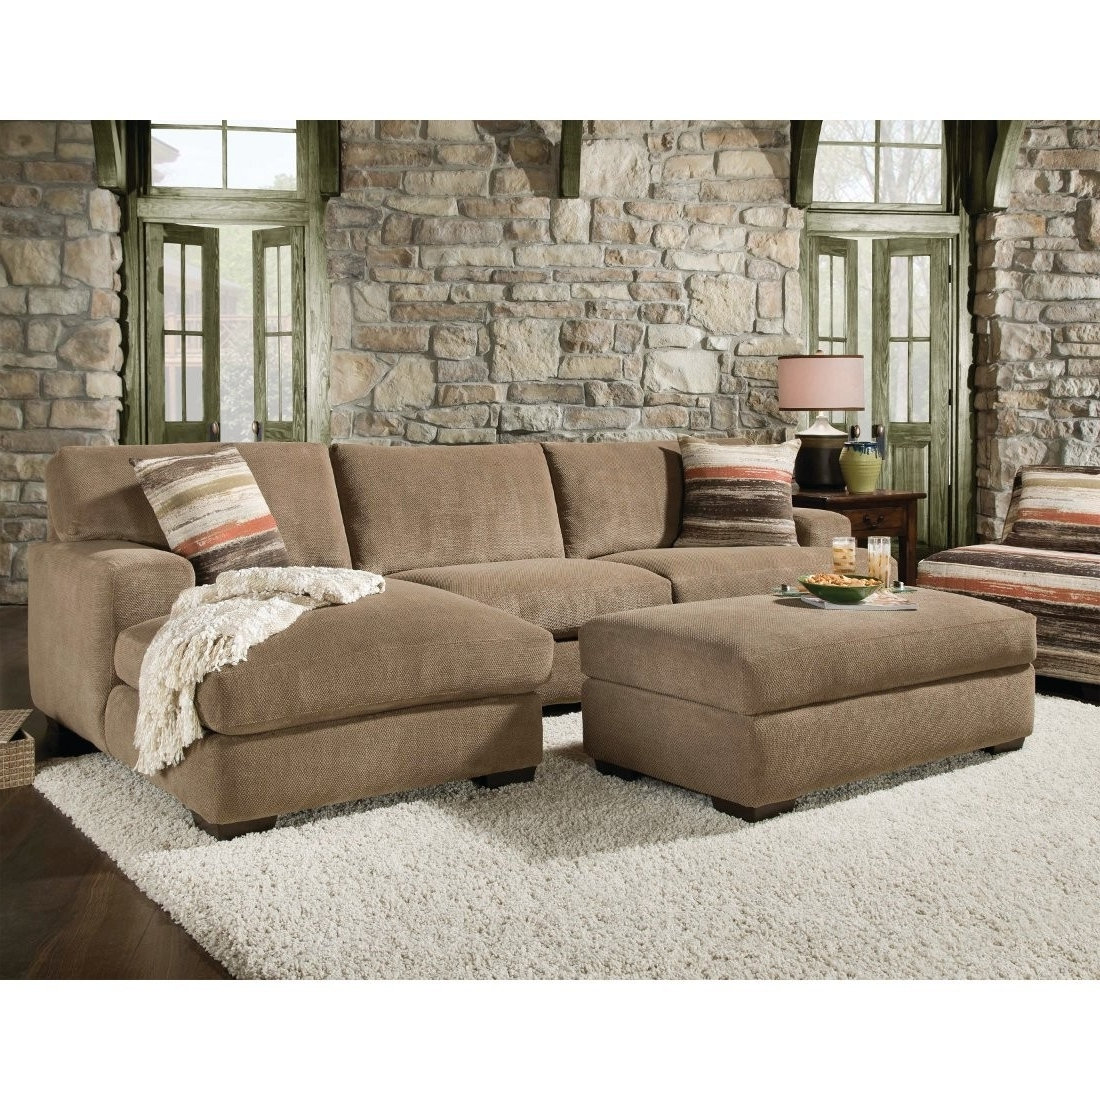 Beautiful Sectional Sofa With Chaise And Ottoman Pictures For Popular Sofas With Large Ottoman (View 13 of 15)